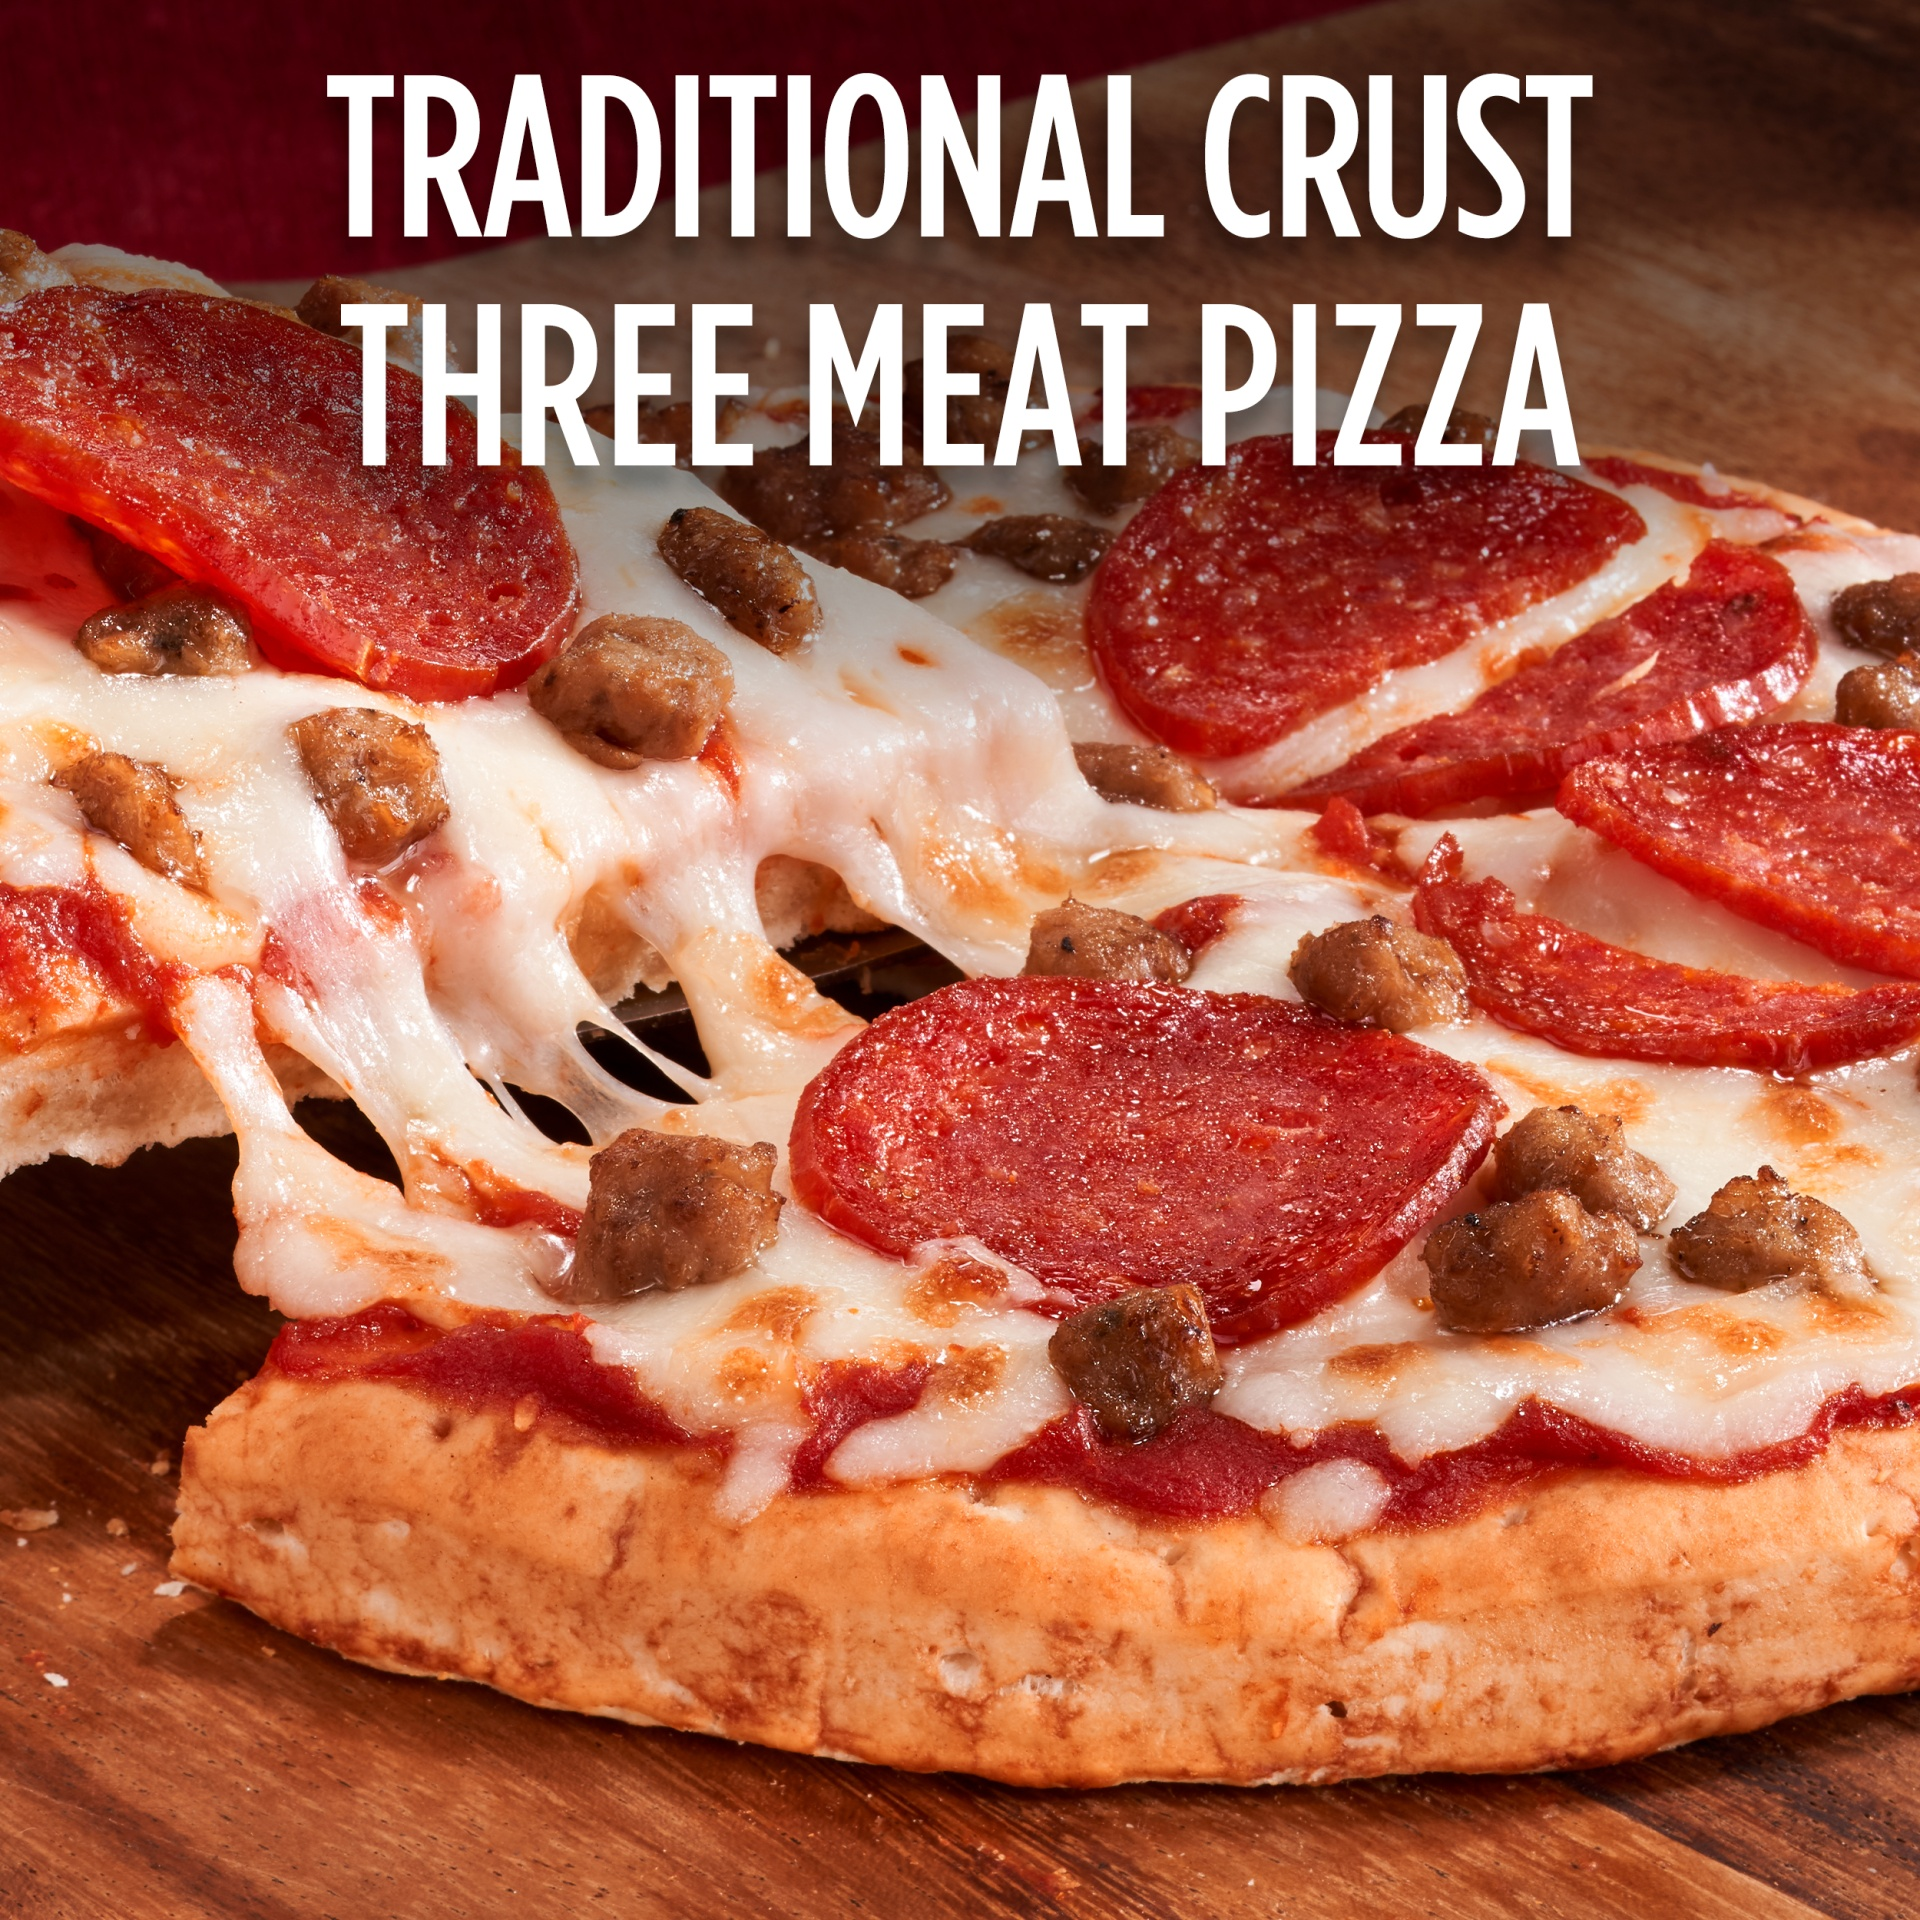 slide 9 of 13, DiGiorno Three Meat Traditional Crust Pizza,